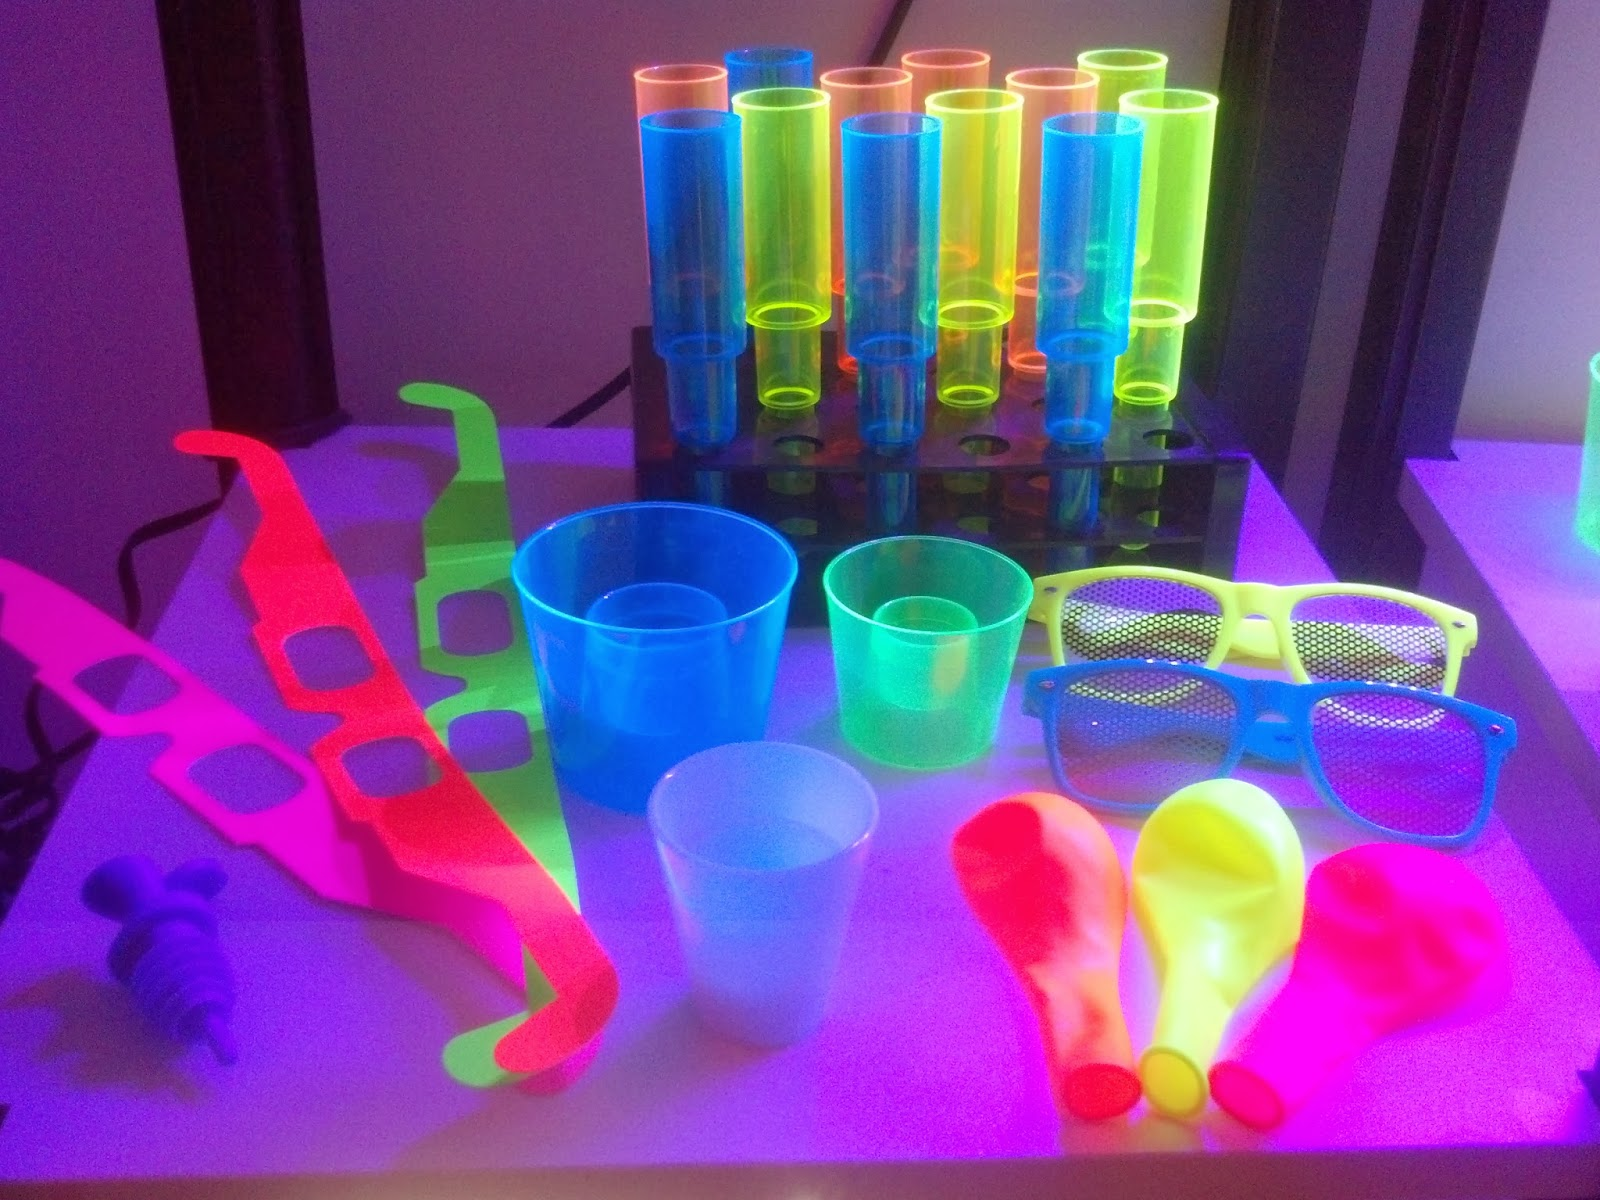 Music Activated Led Lights